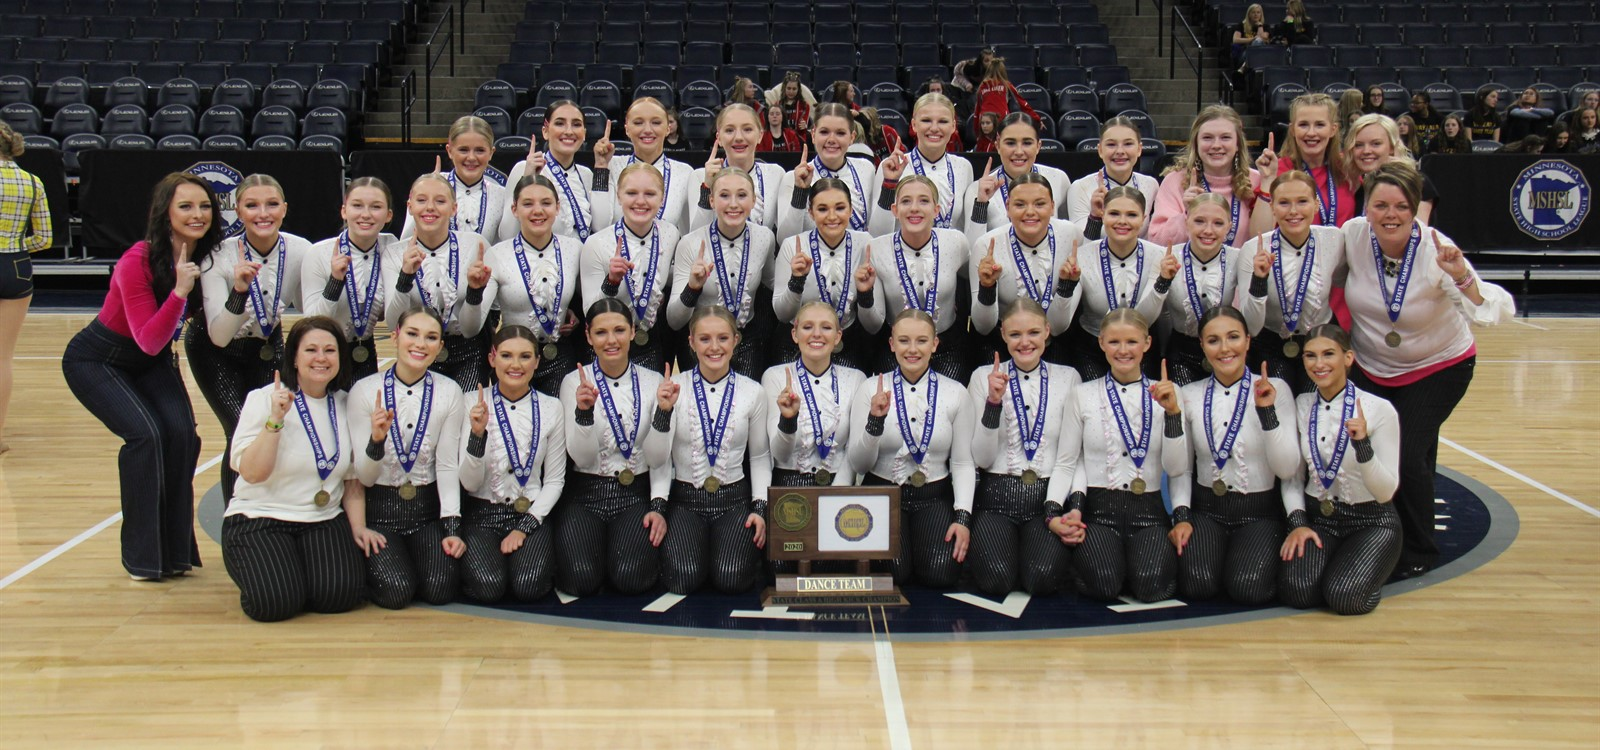 High Kick State Champs!